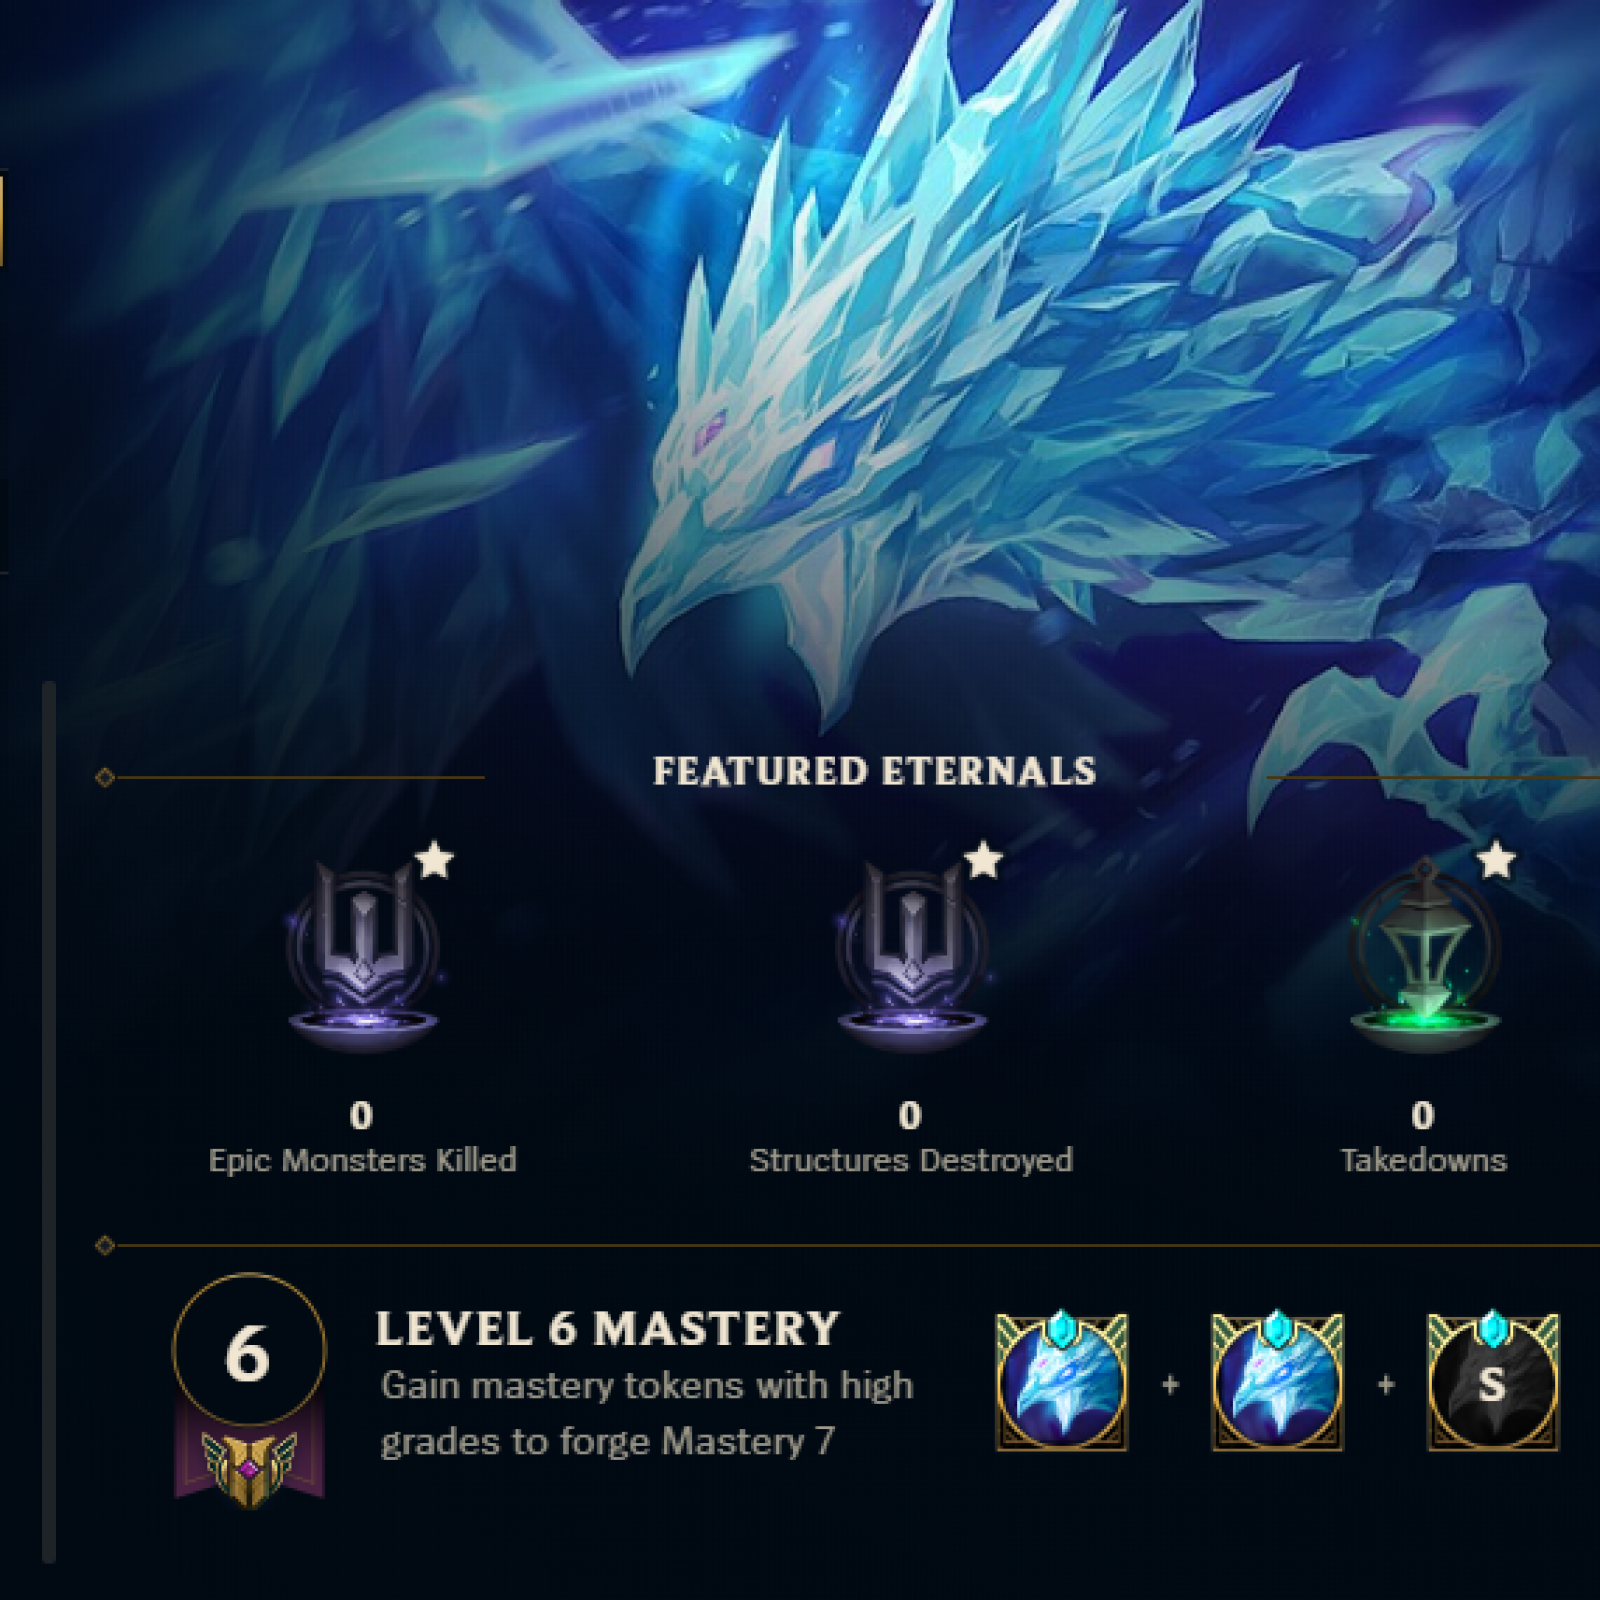 League Of Legends Eternals Guide Prices How To Use Paid Achievements